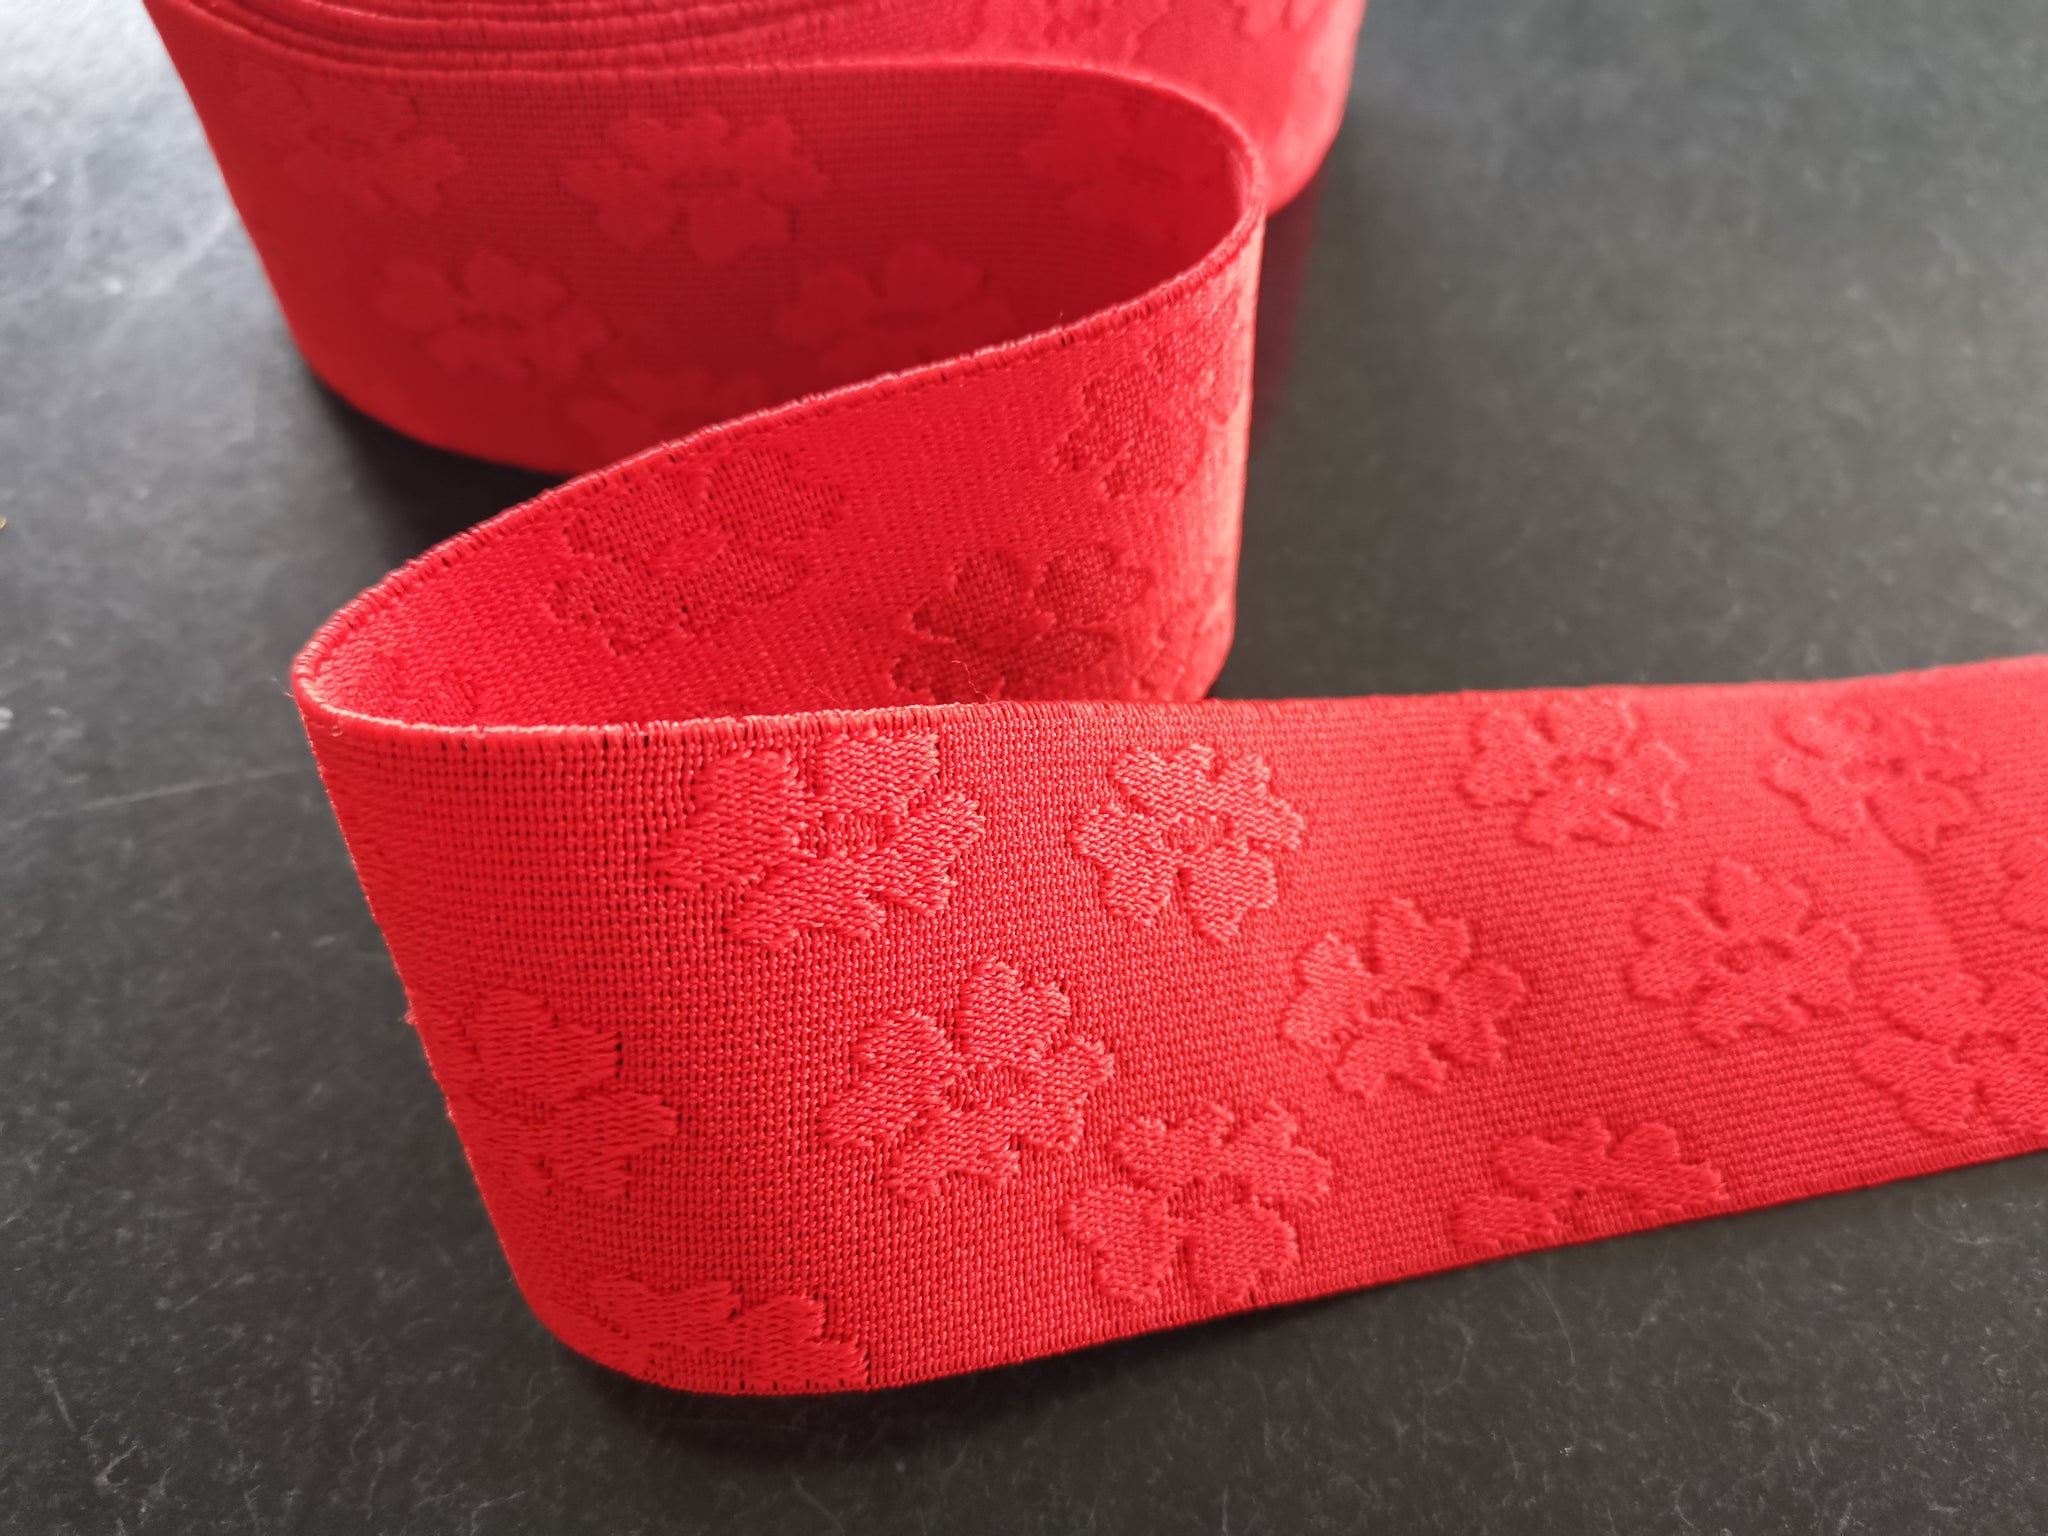 Jacquard Elastic Band - Red Poppy